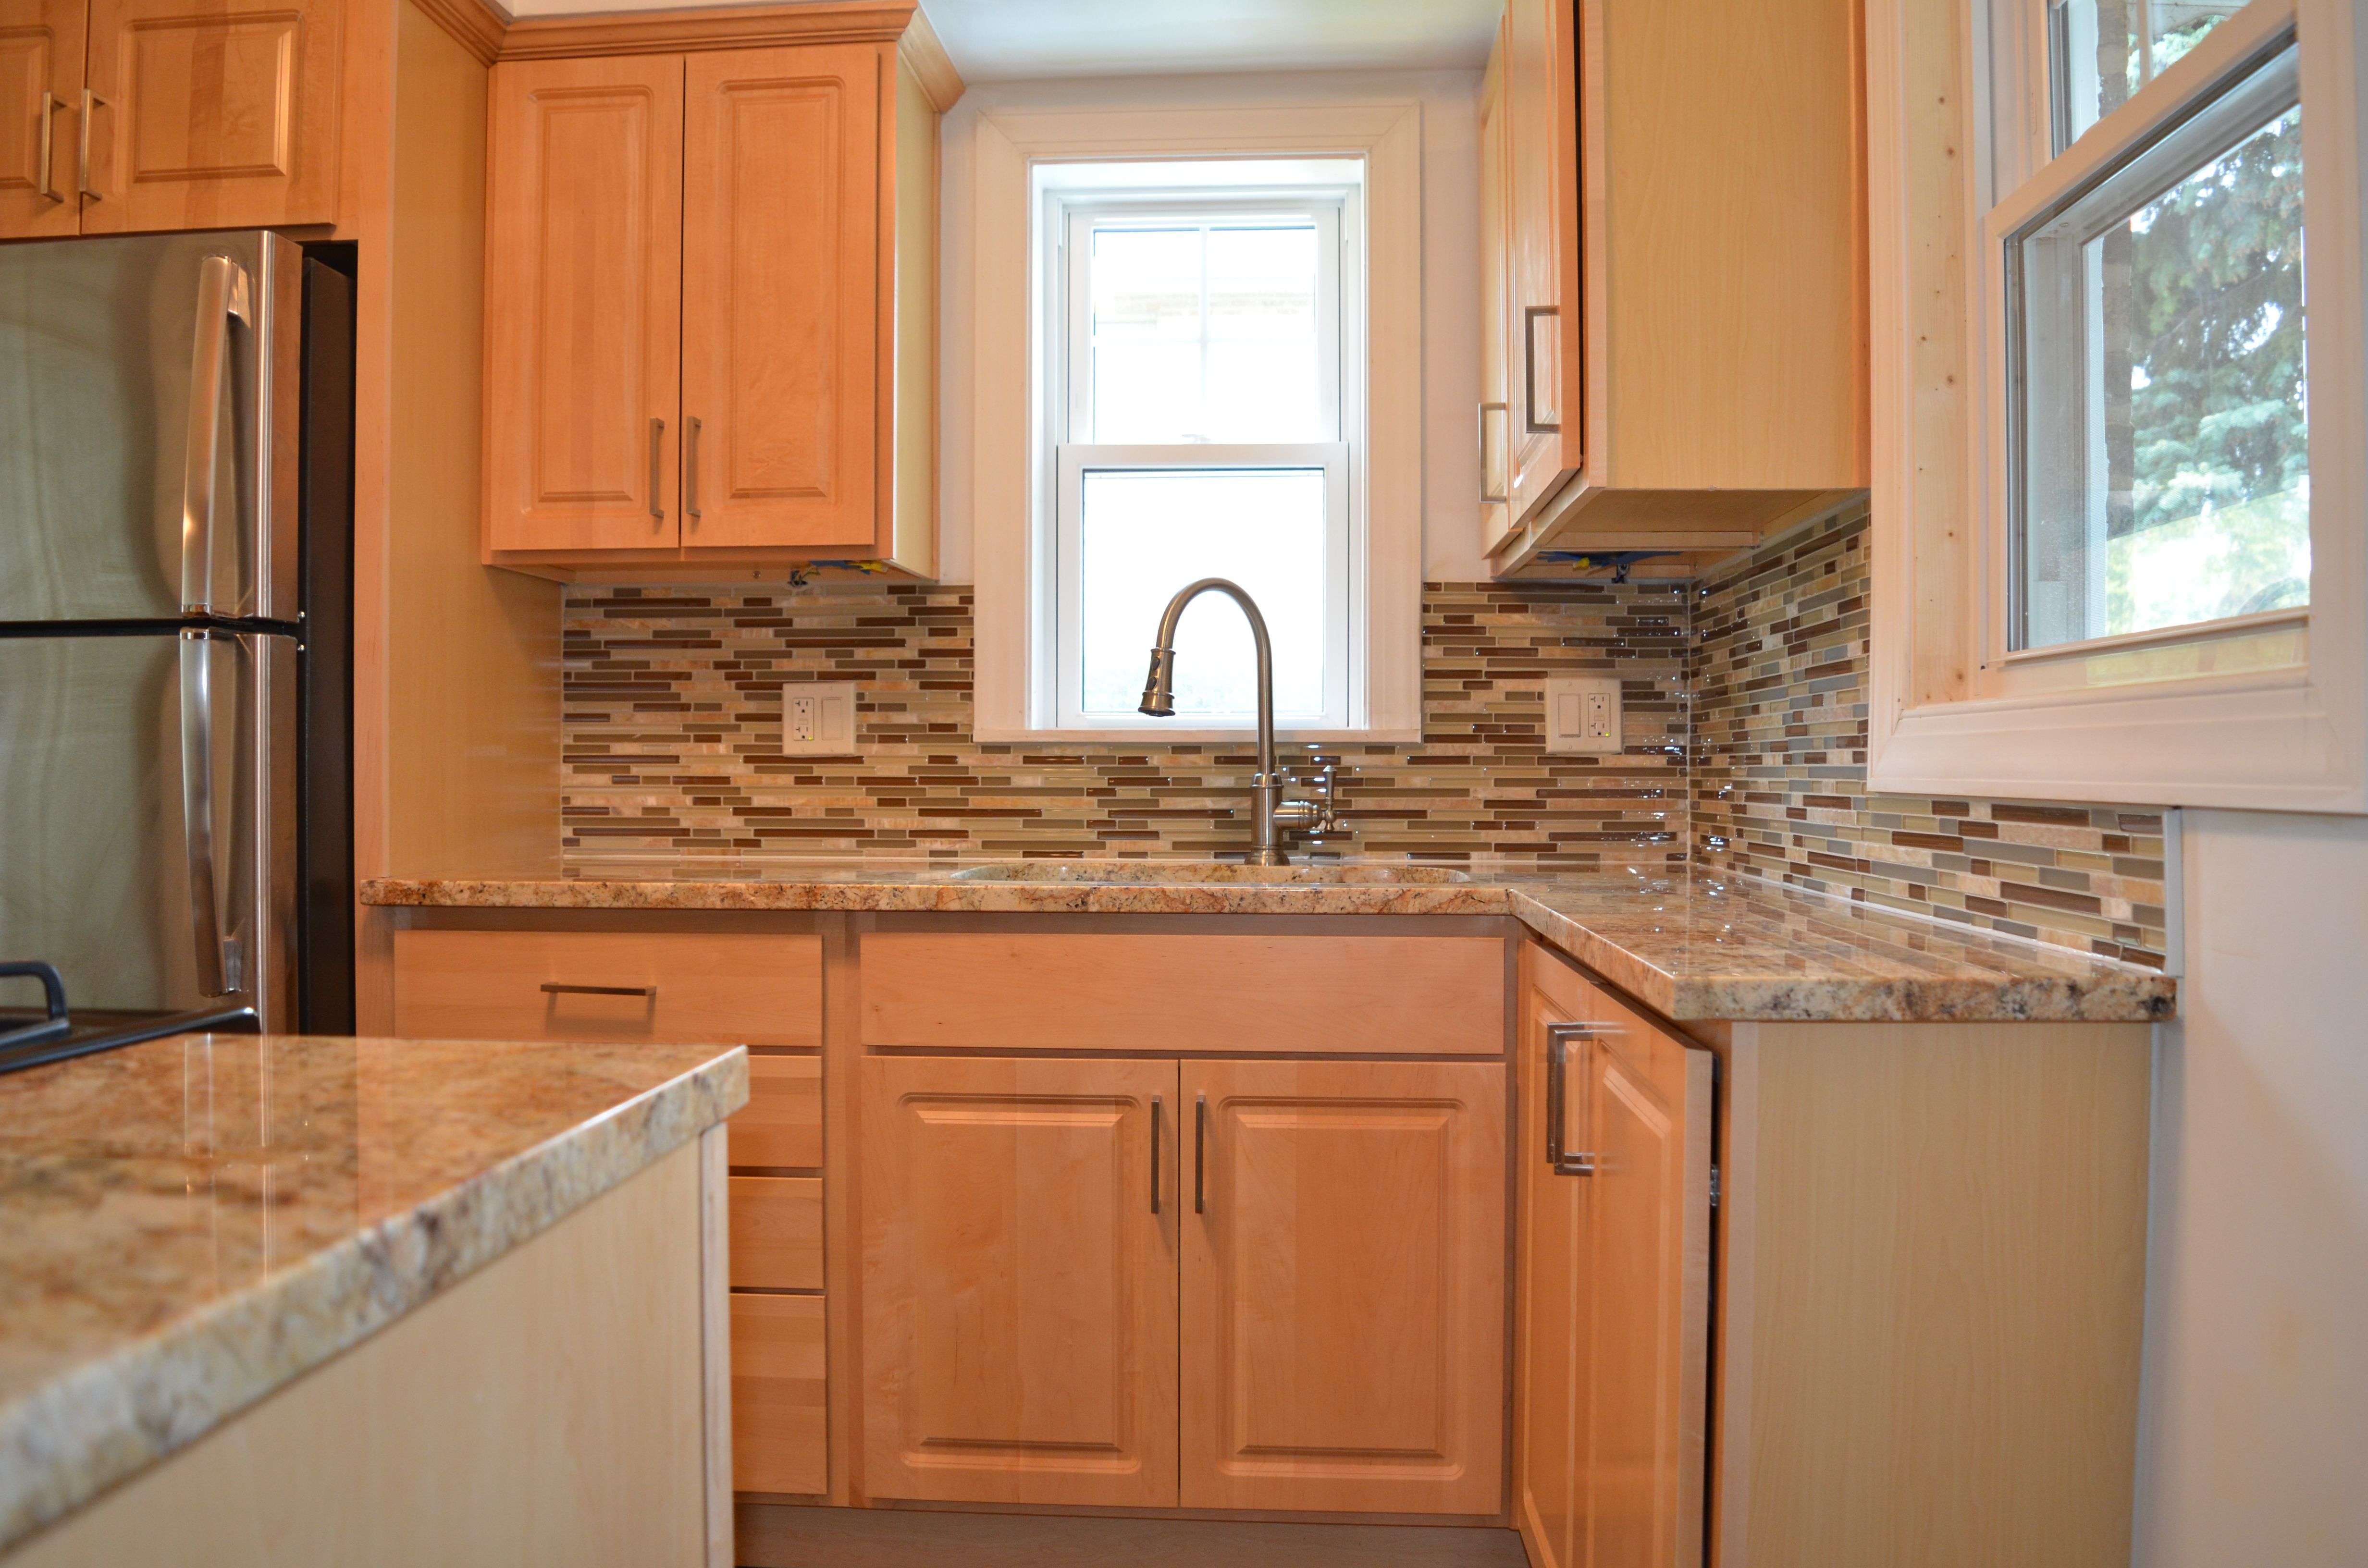 Kitchen Remodel With Natural Maple Cabinets, Granite Countertops, Glass  Tile Backsplash, Chrome Accents